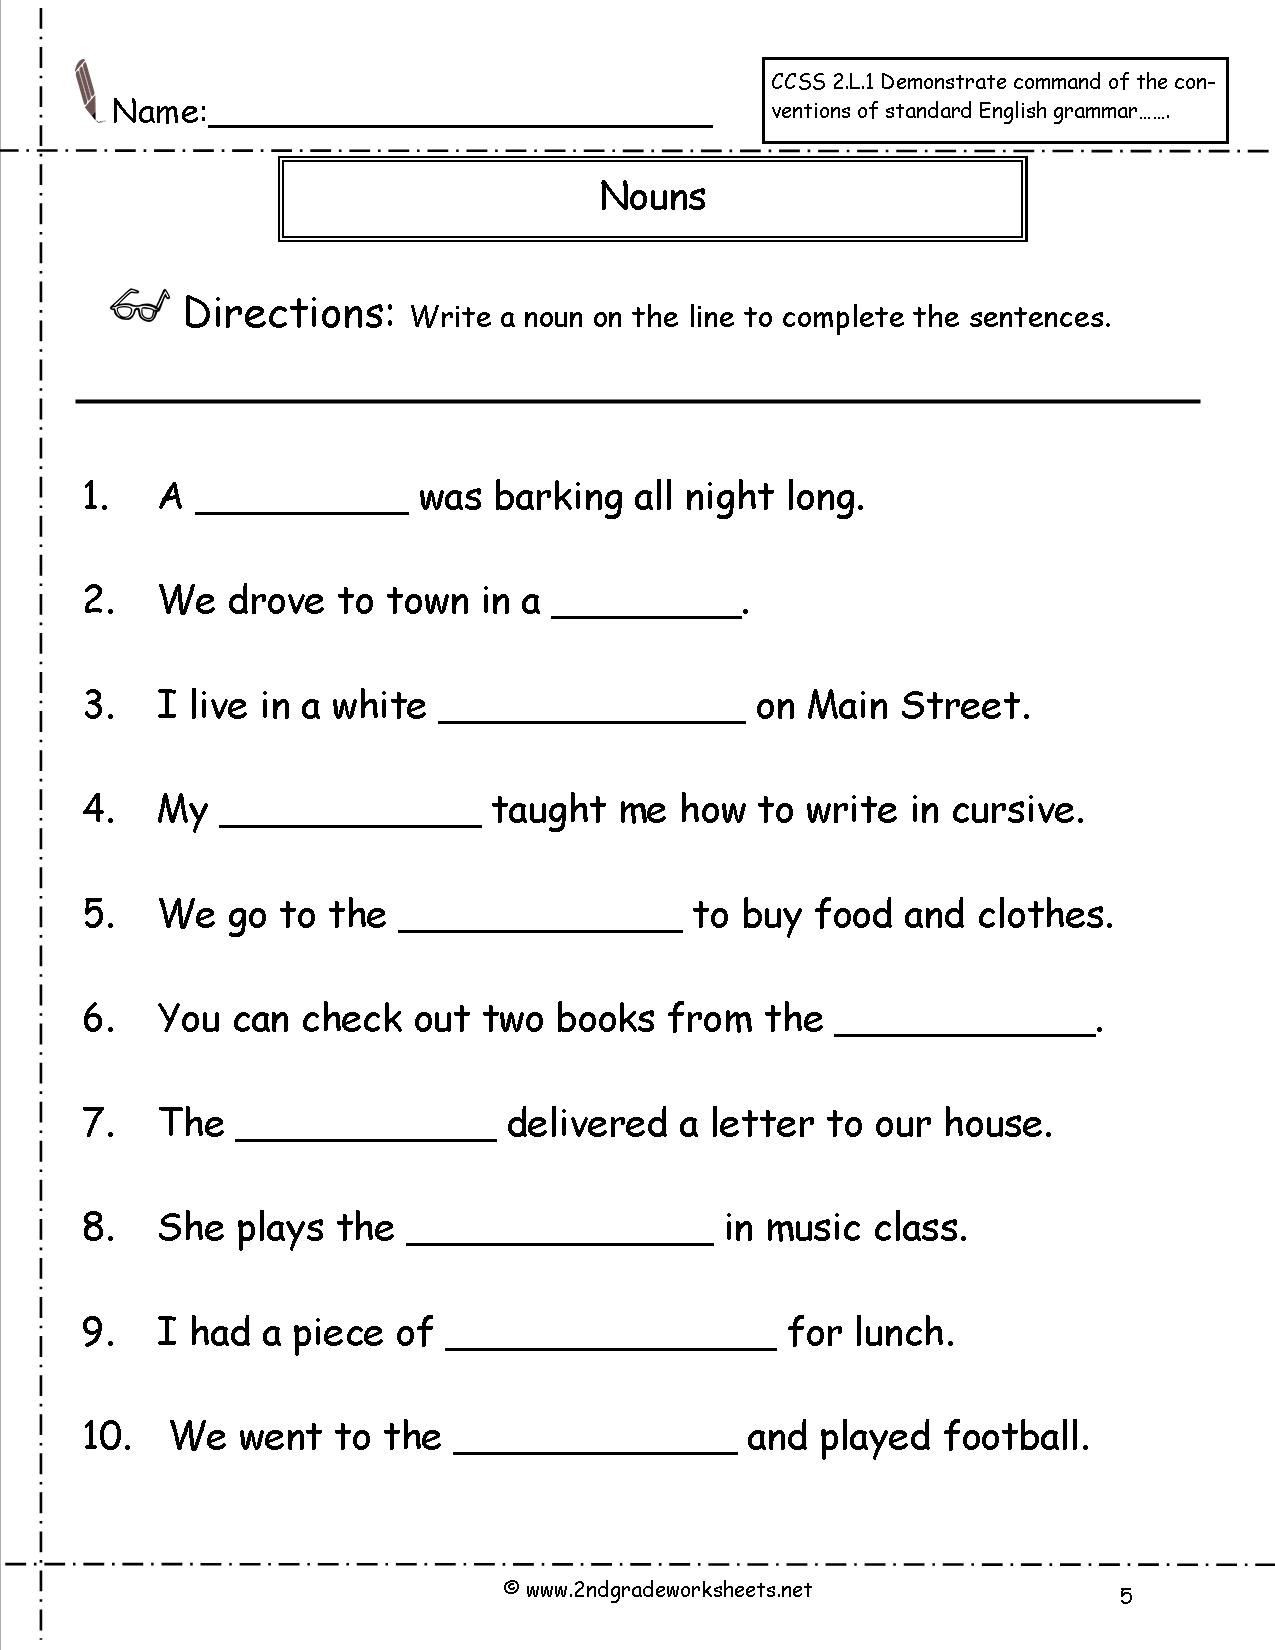 Commas Worksheets 5th Grade English Grammar Noun Worksheet for Grade 1 Elegant Nouns